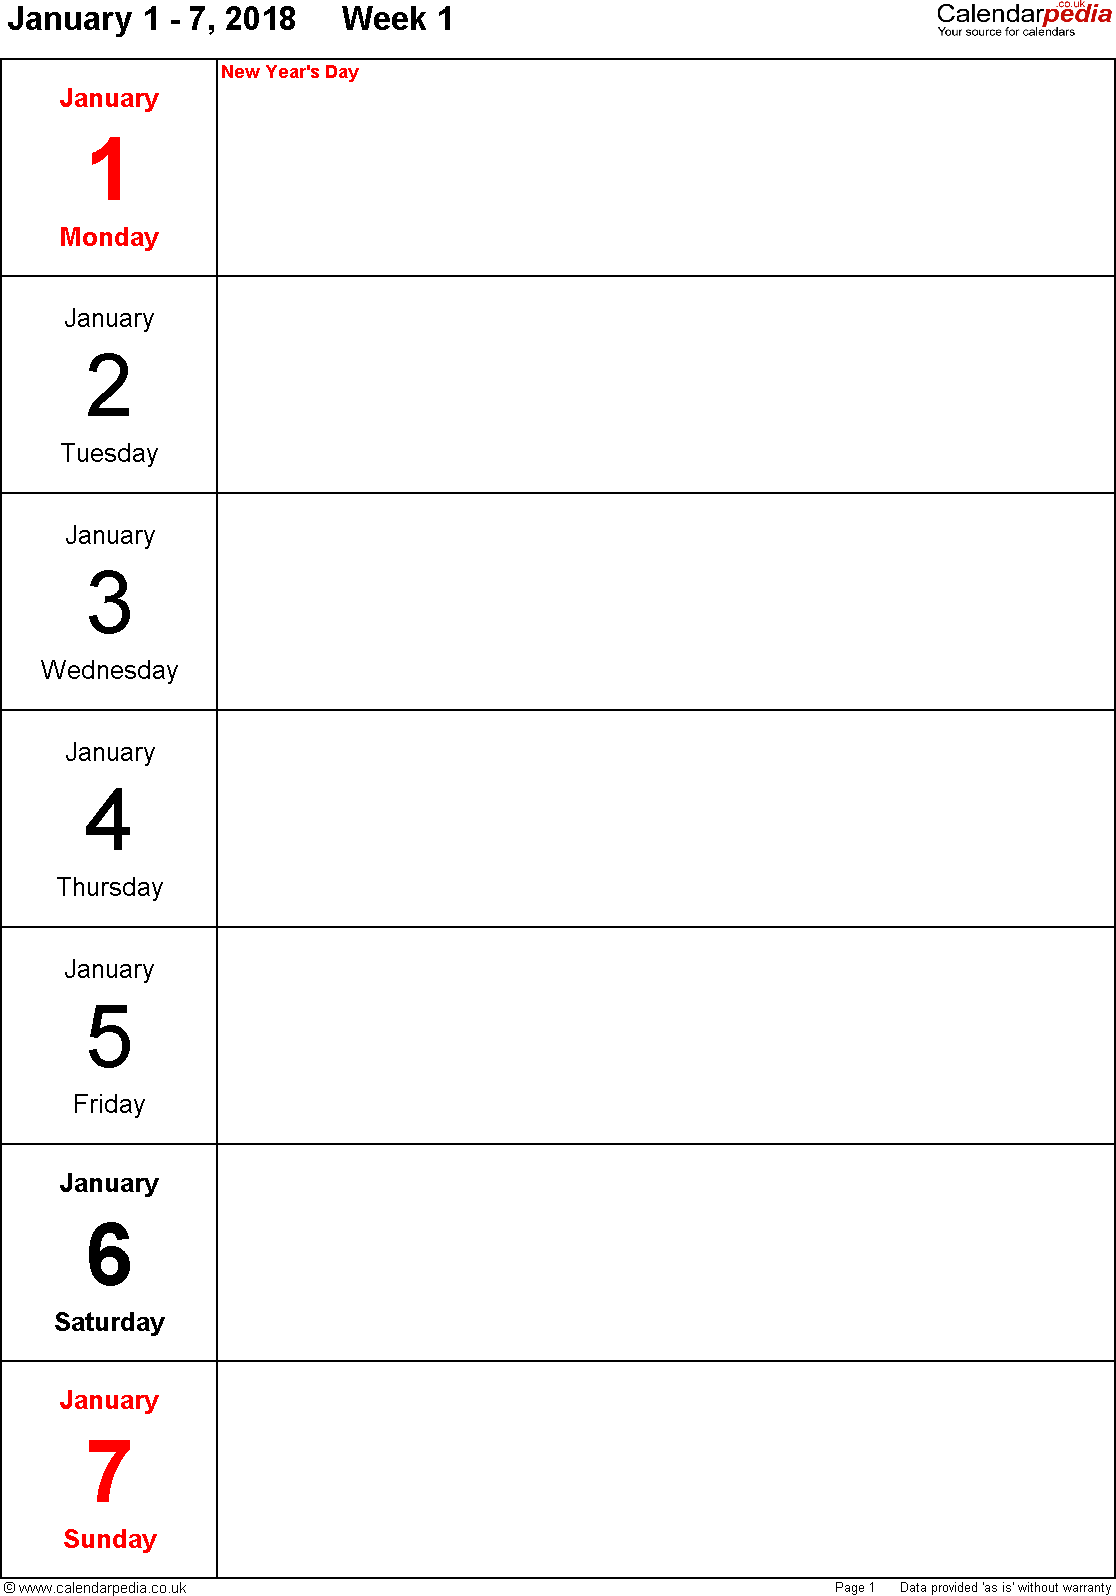 PDF template 10: Weekly calendar 2018, portrait orientation, days vertically, 53 pages (1 calendar week on 1 page)